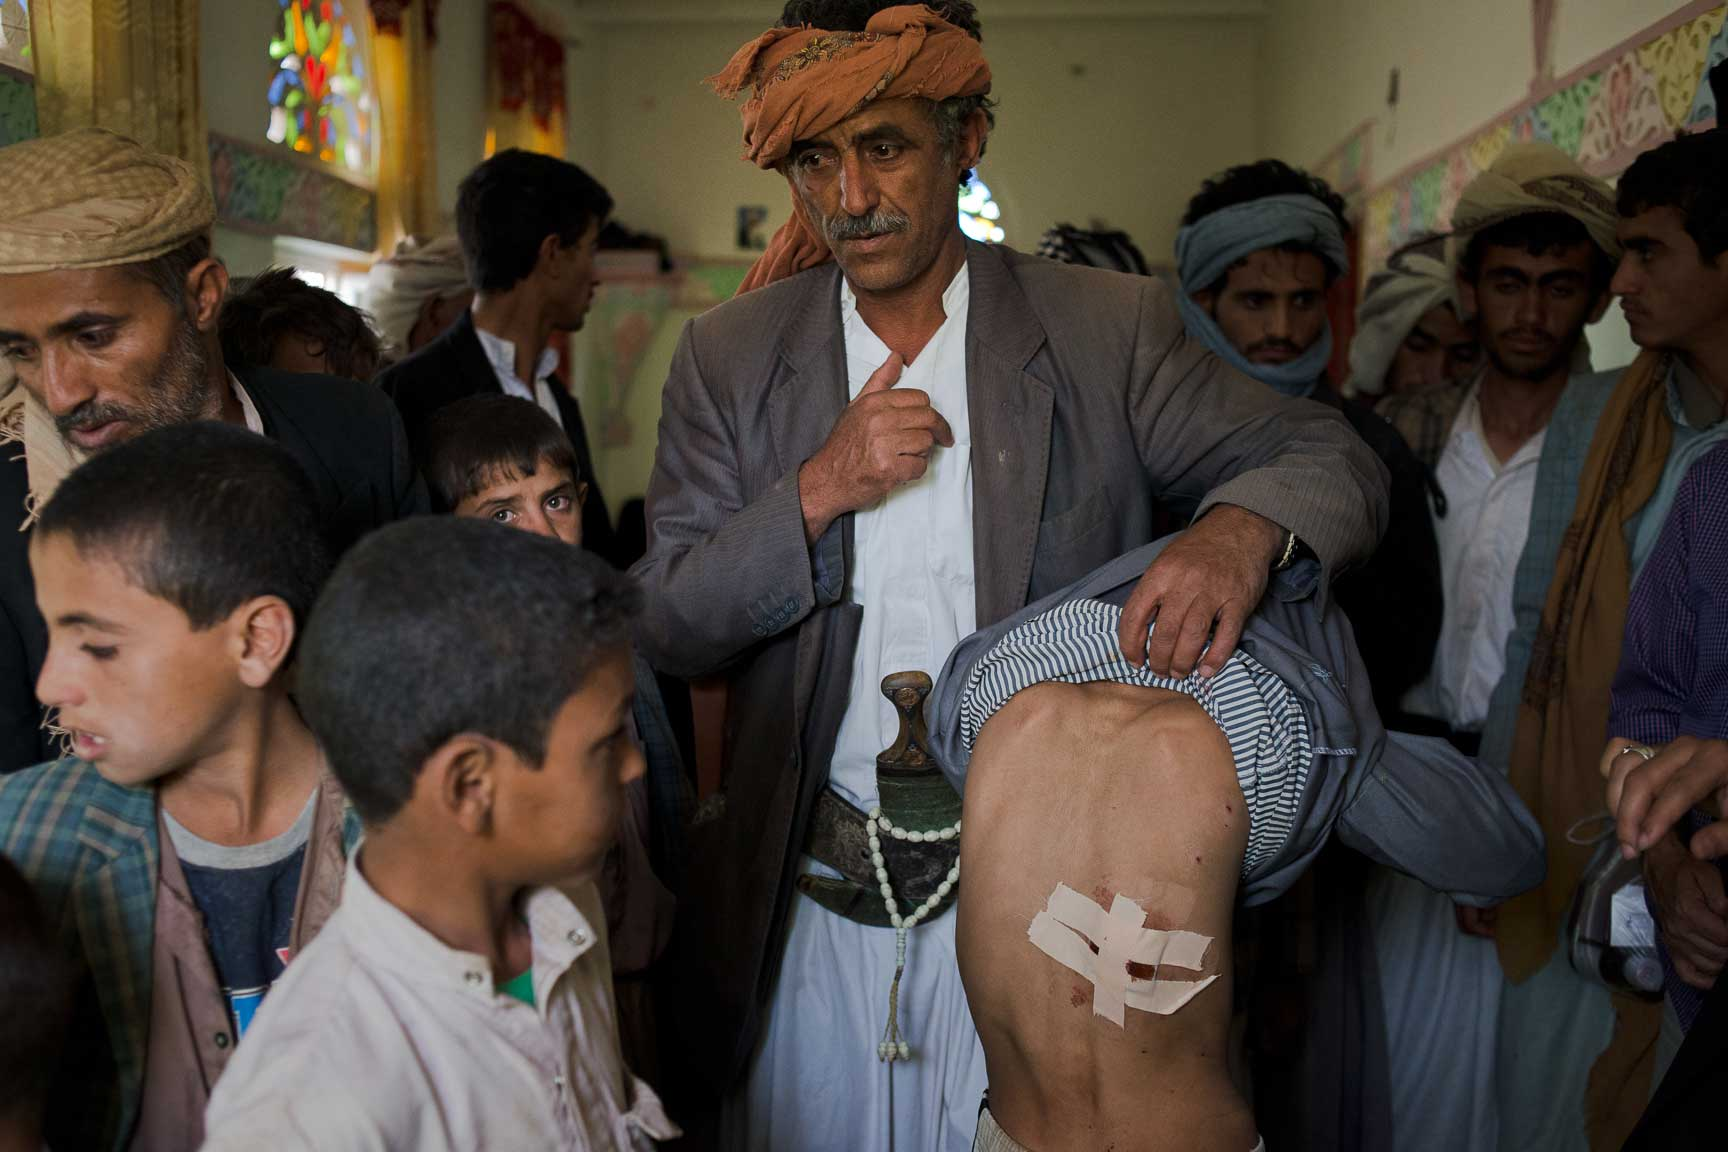 A Yemeni man shows off the wounds of a boy who was injured in a recent airstrike, Thursday July 7, 2015 in Al Joob Village, Yemen.. Two airstrikes on July 6 hit a public market near homes and a mosque and farmers selling produce on the side of the road; the two combined killed over 30 civilians.